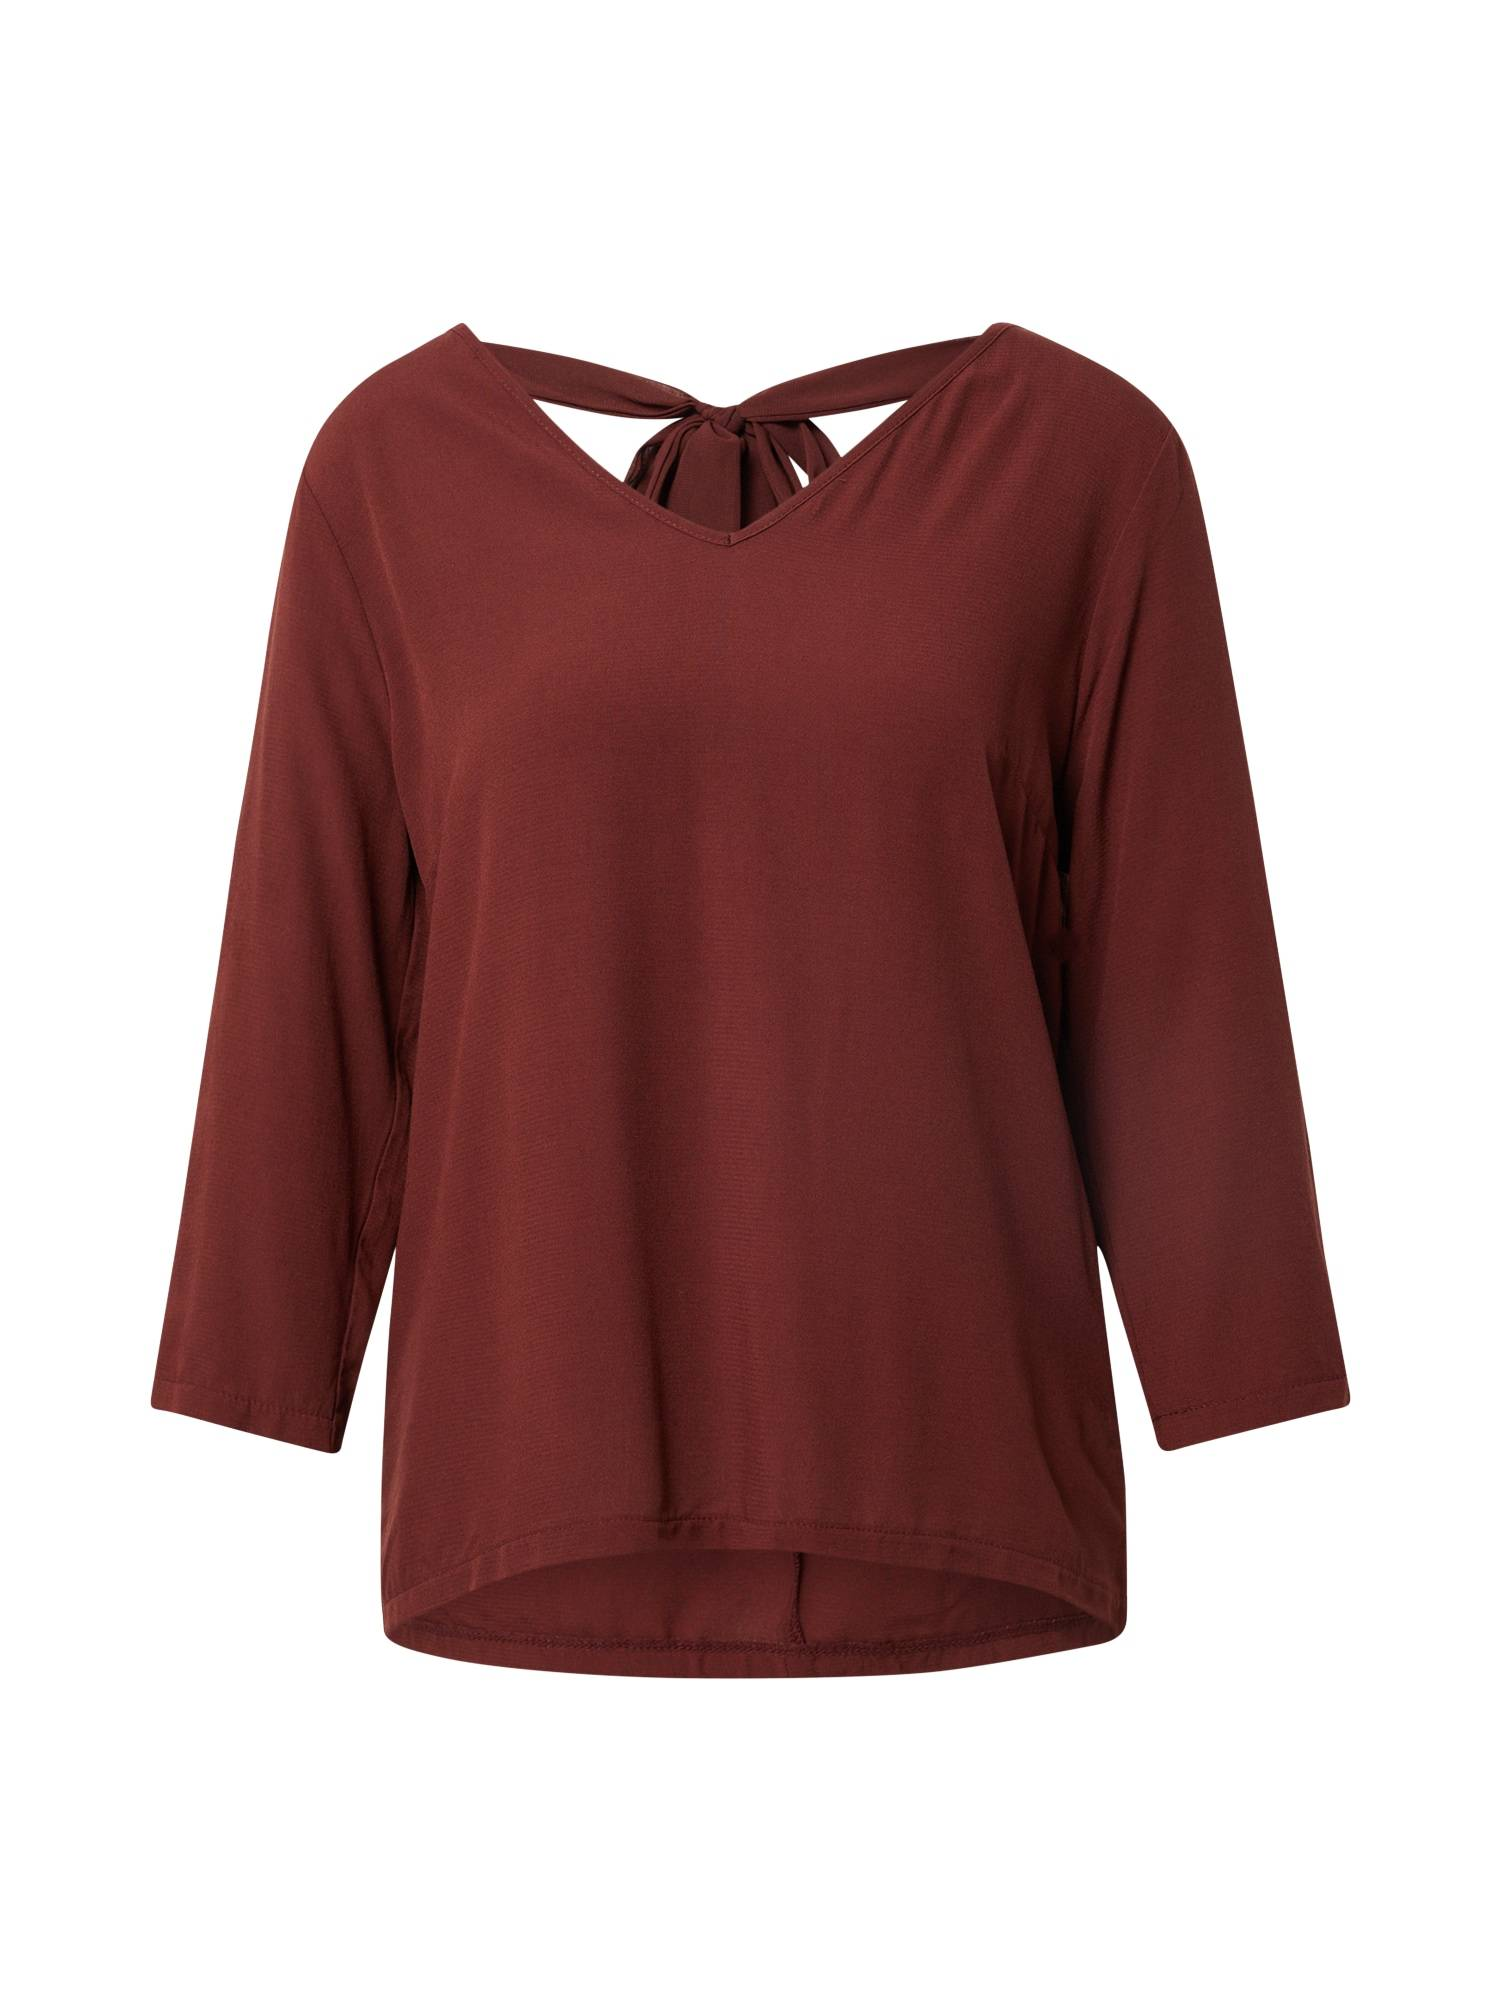 ABOUT YOU Chemisier 'Farine'  - Rouge - Taille: 38 - female